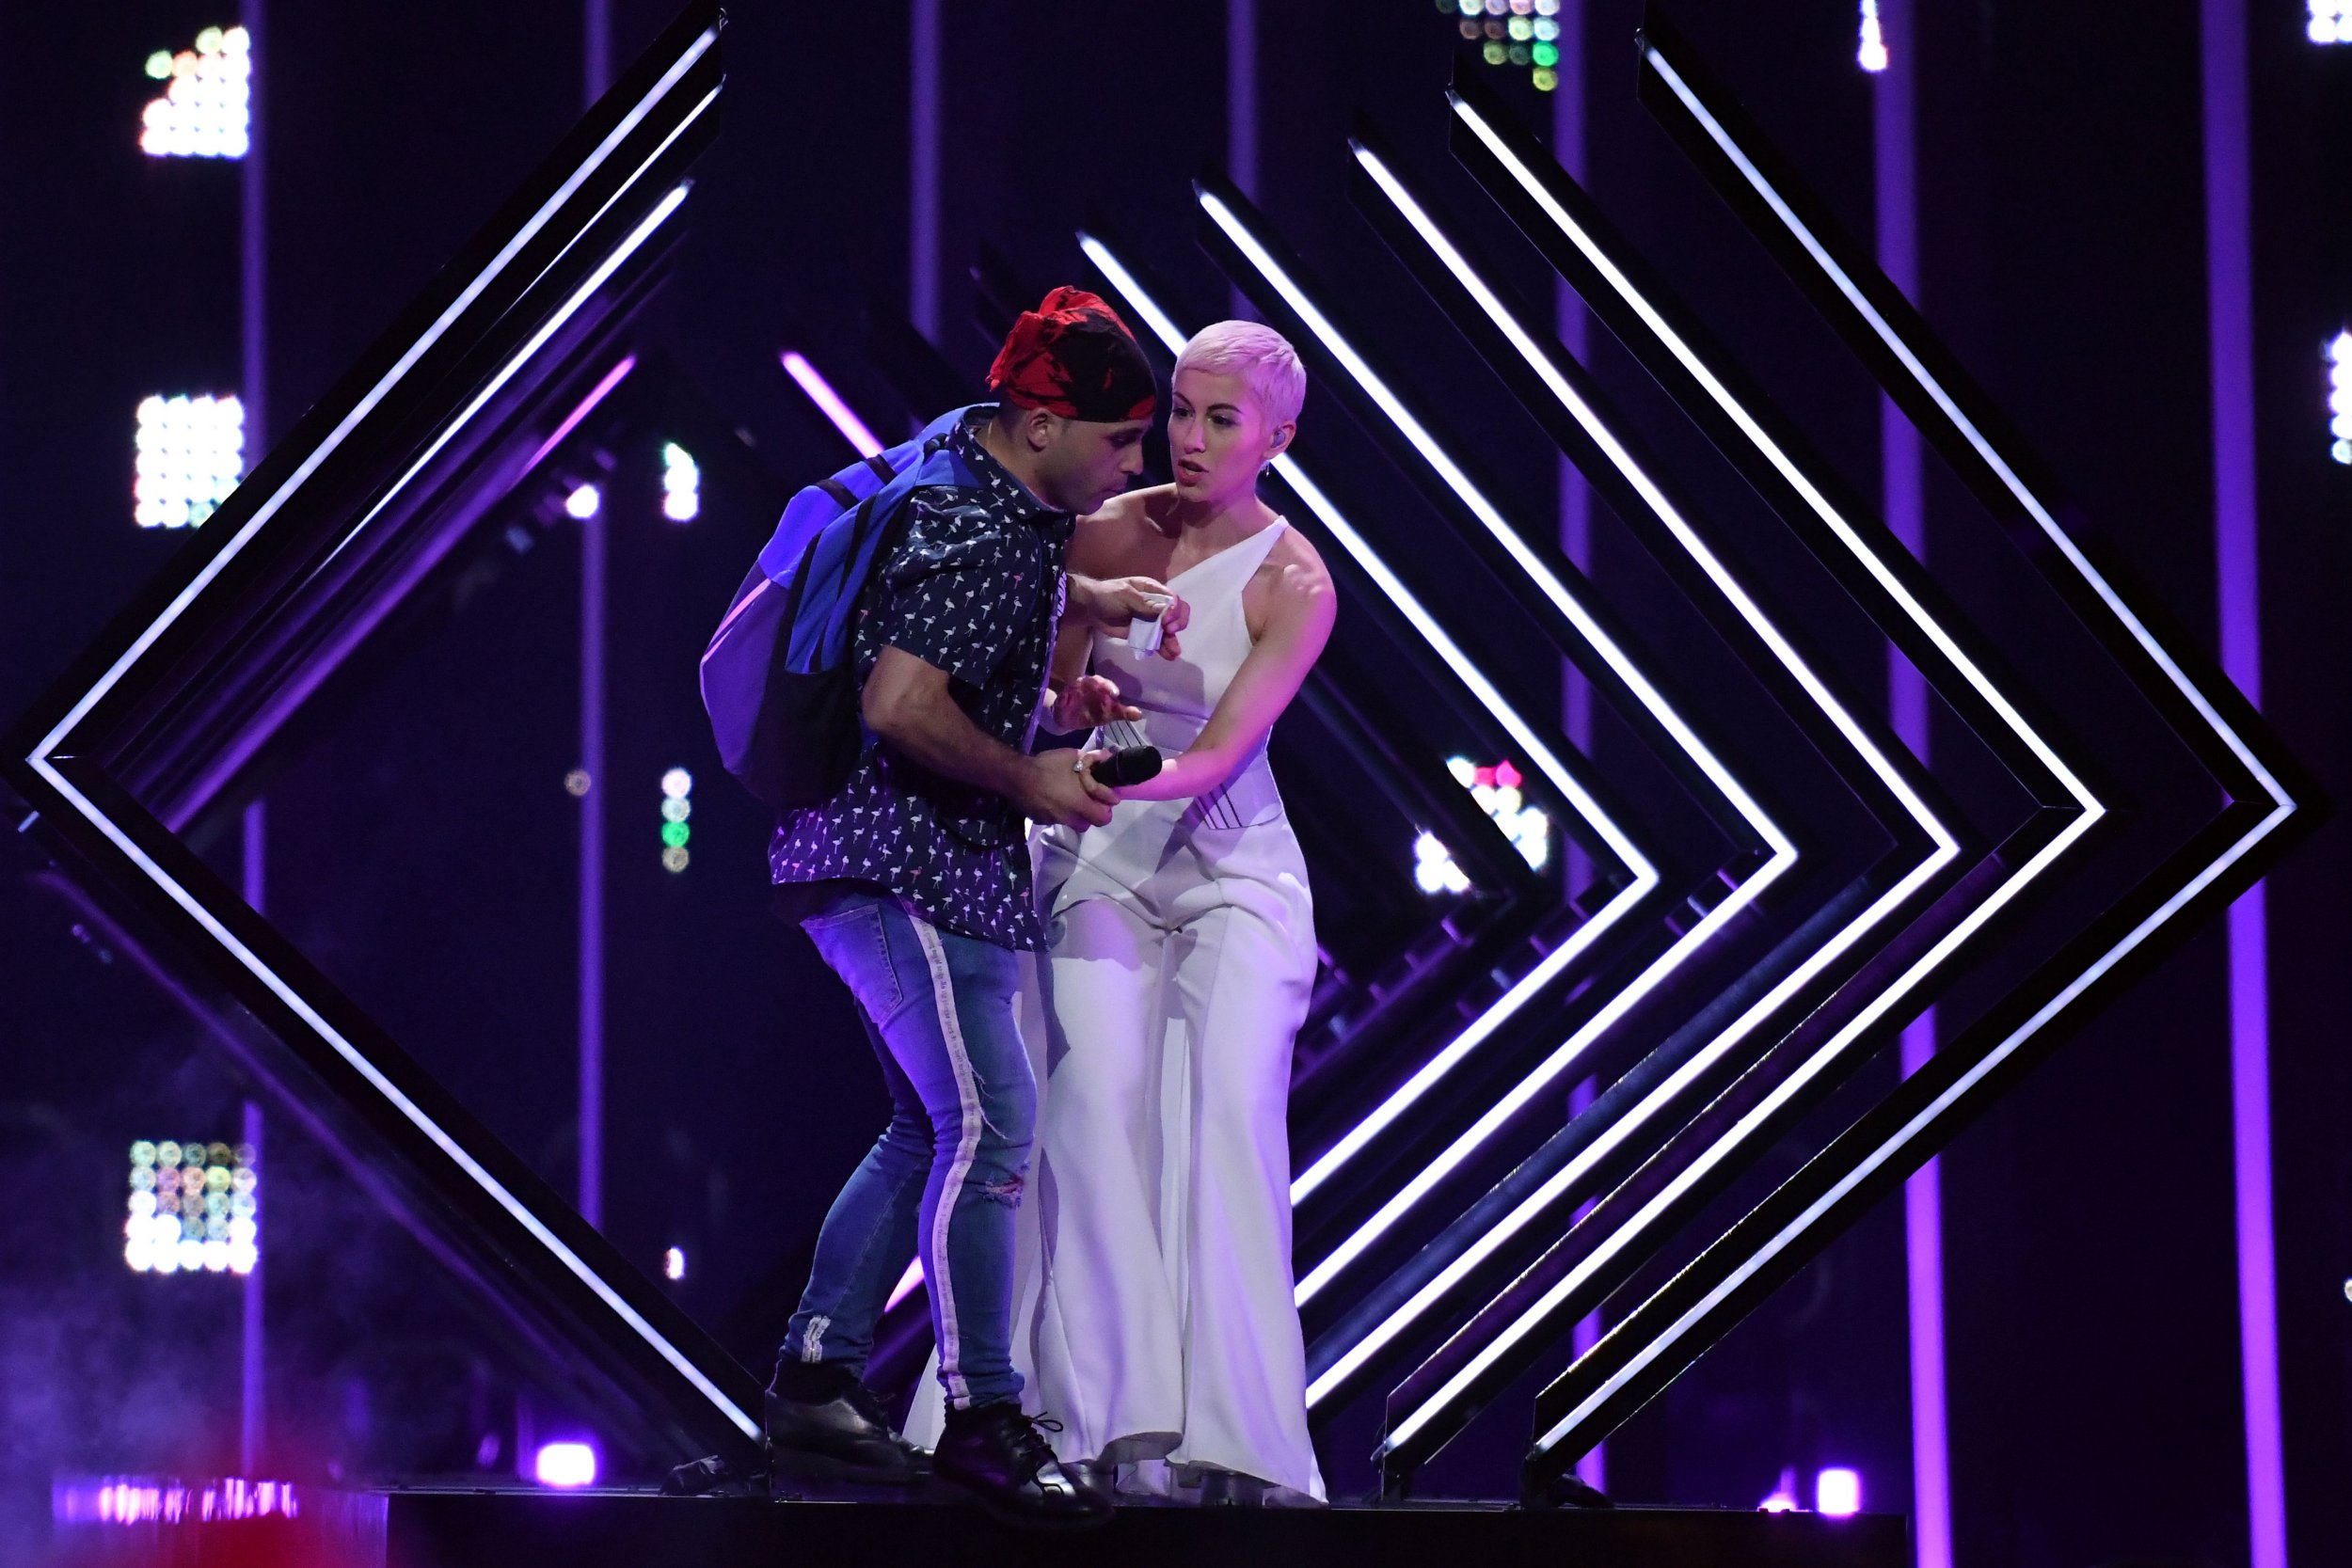 """A man takes the microphone from Britain's singer Susanna Marie Cork aka SuRie as she performs """"Storm"""" during the final of the 63rd edition of the Eurovision Song Contest 2018 at the Altice Arena in Lisbon, on May 12, 2018. / AFP PHOTO / Francisco LEONGFRANCISCO LEONG/AFP/Getty Images"""